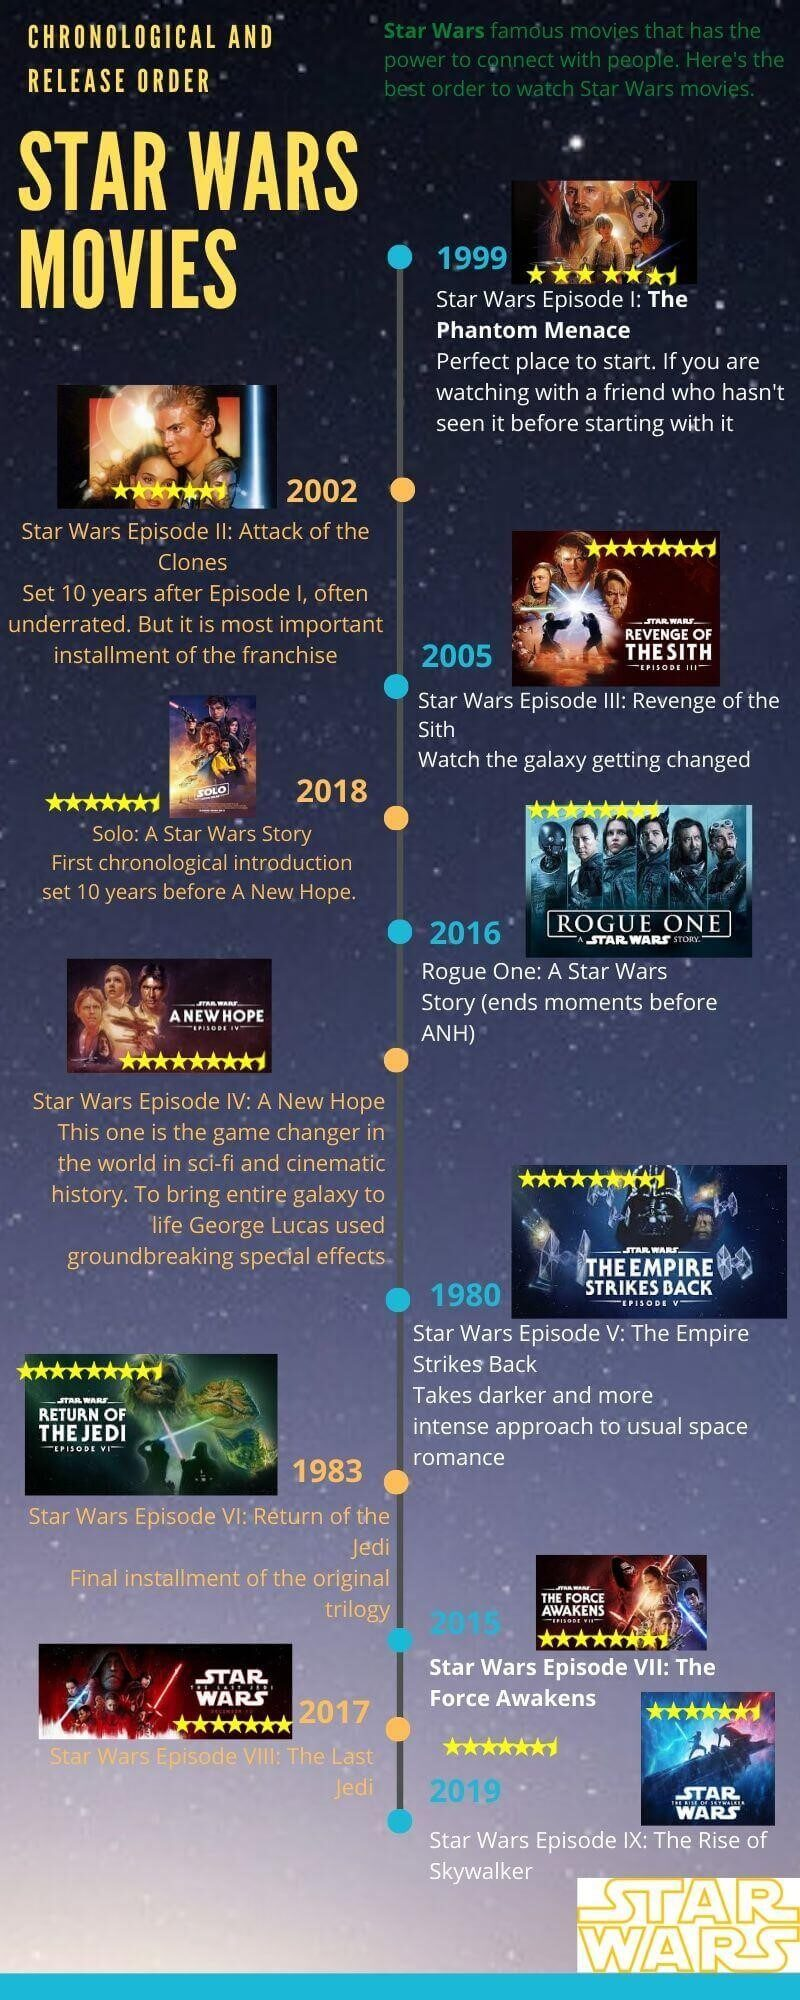 Chronological and Release Order of Star Wars Movies